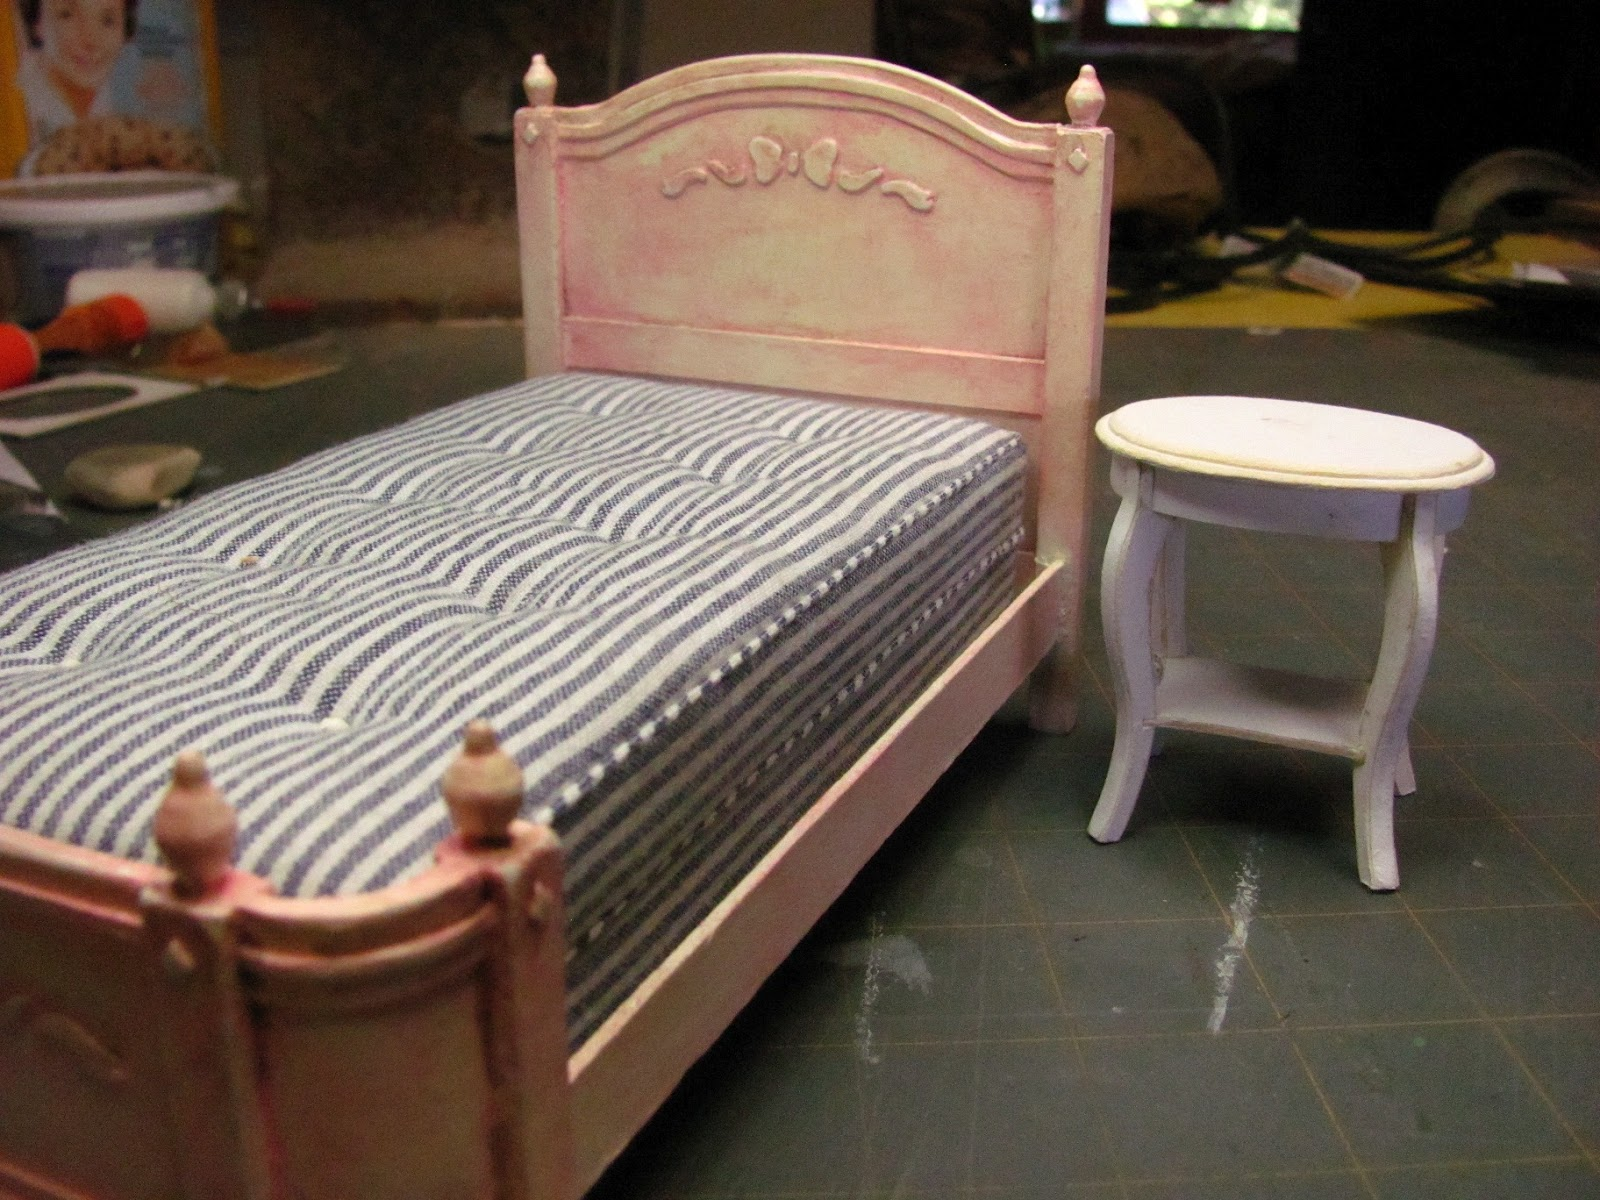 How To Make Miniature Furniture Cardboard Miniature Furniture Make